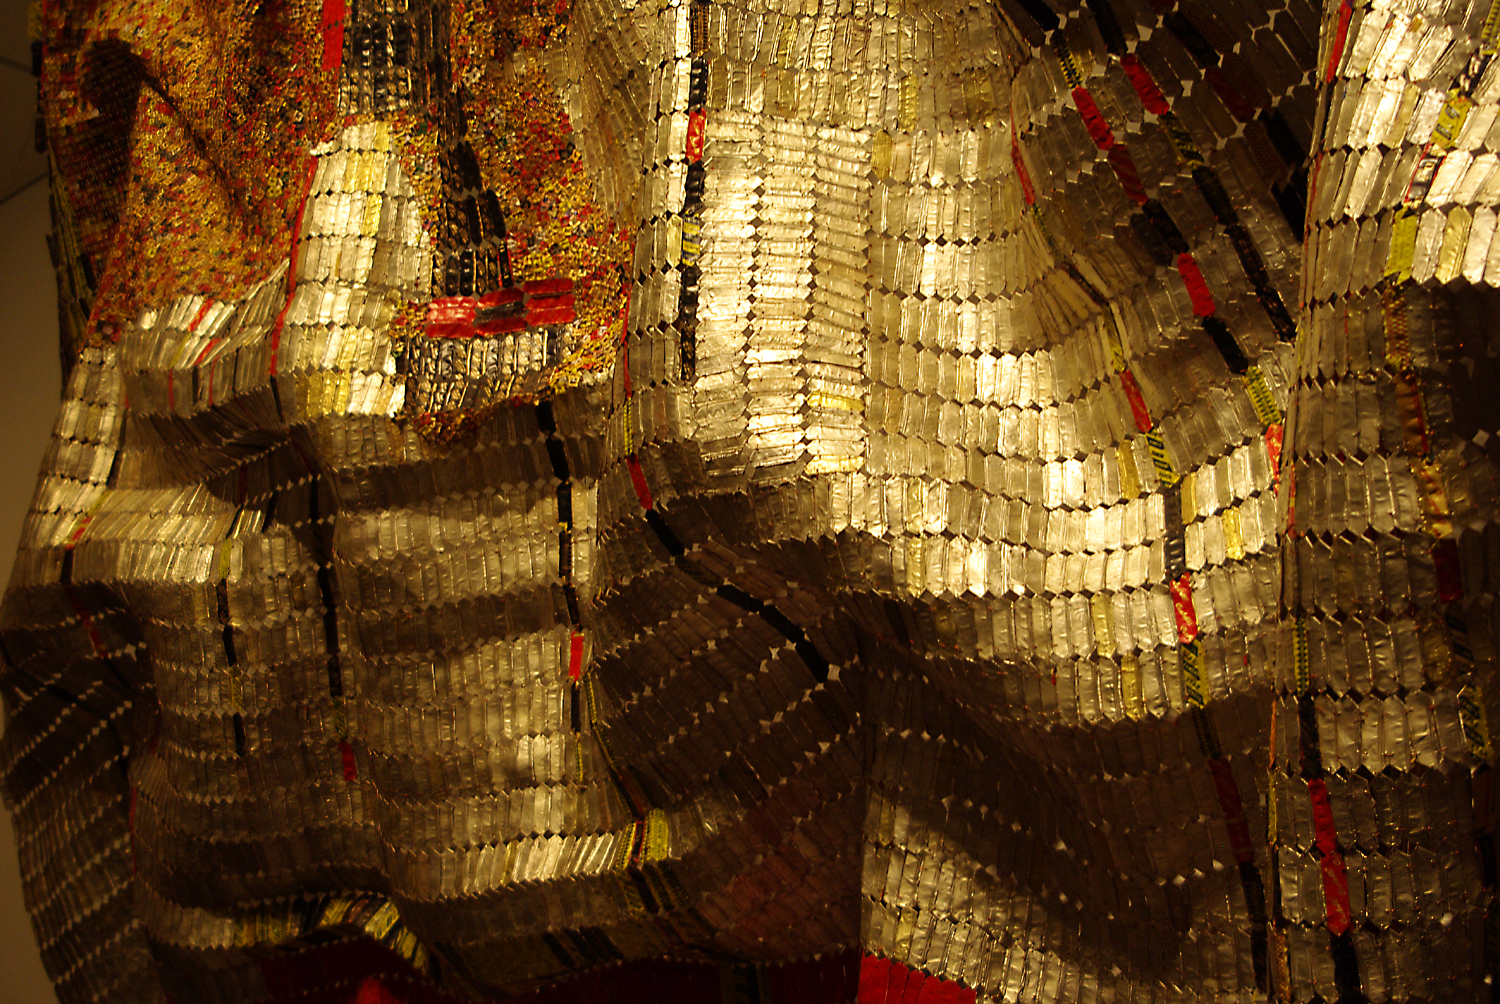 The Life and Art of El Anatsui